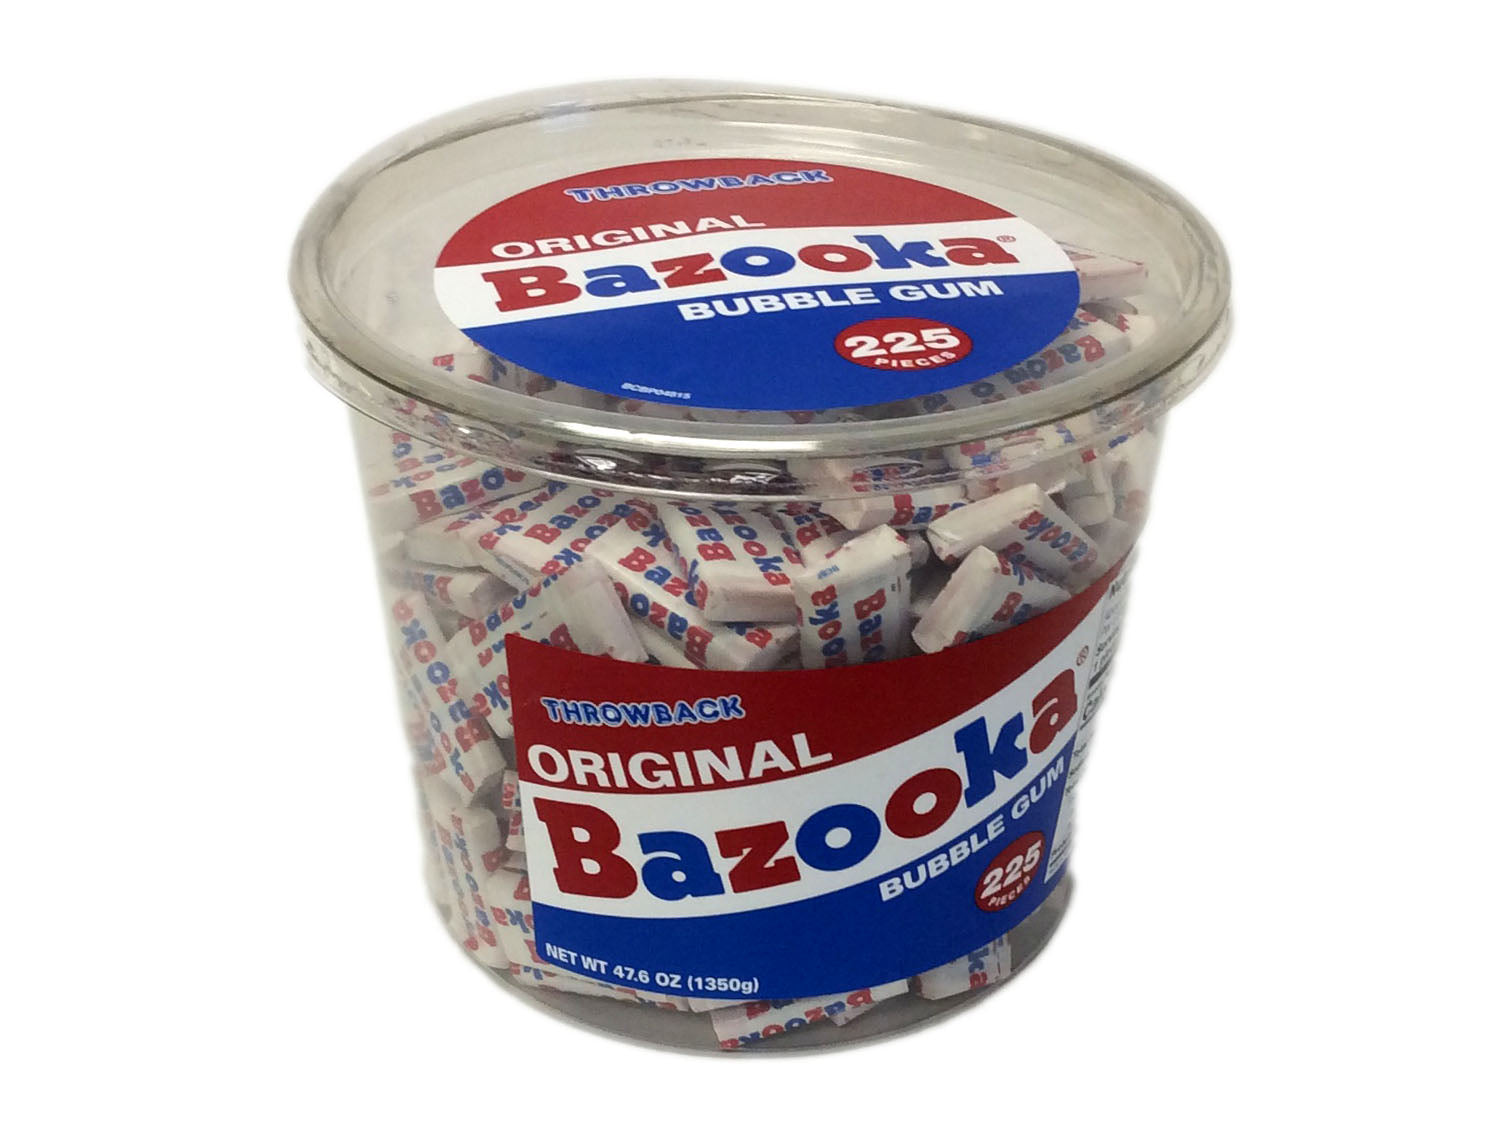 Bazooka Bubble Gum - 225 piece plastic tub